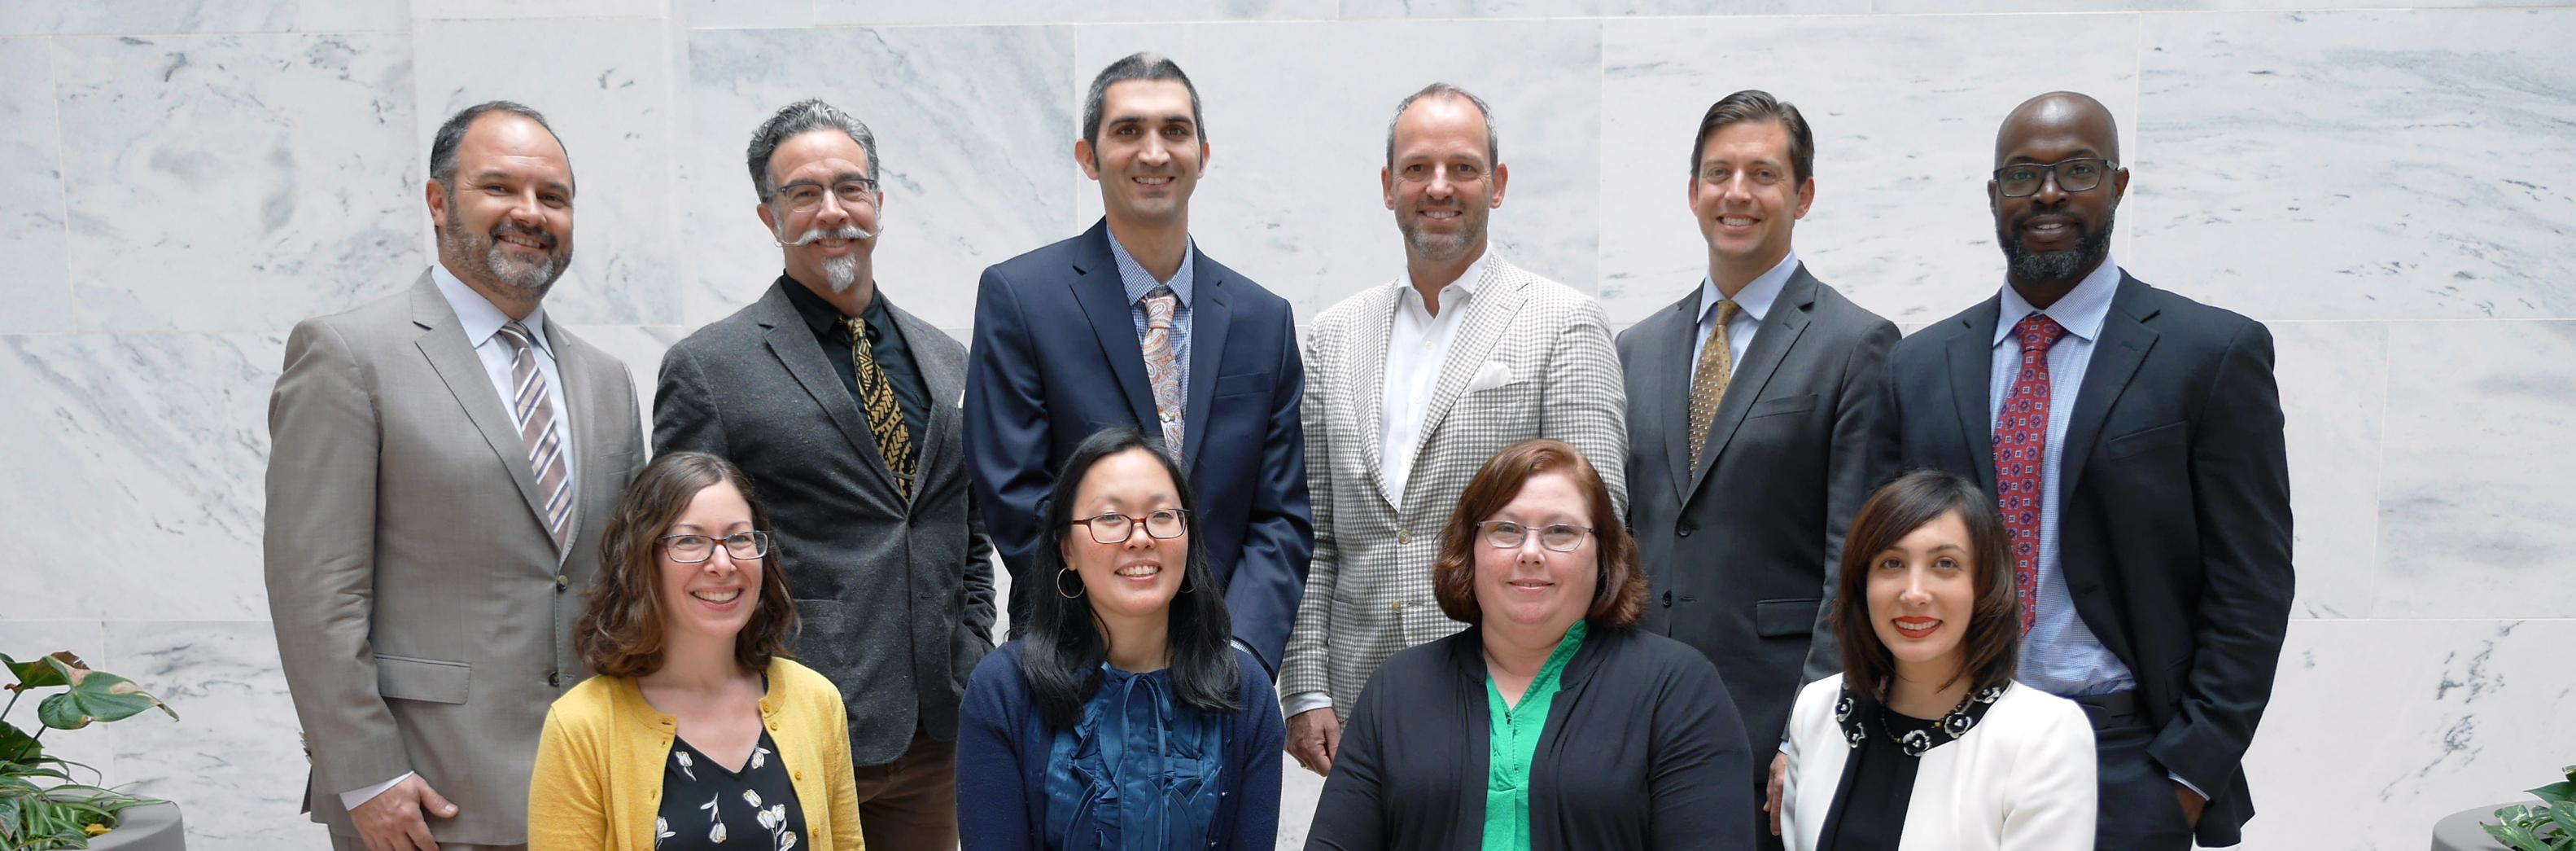 2019-2020 AAAS Leshner Leadership Fellows, researchers in the field of human augmentation.